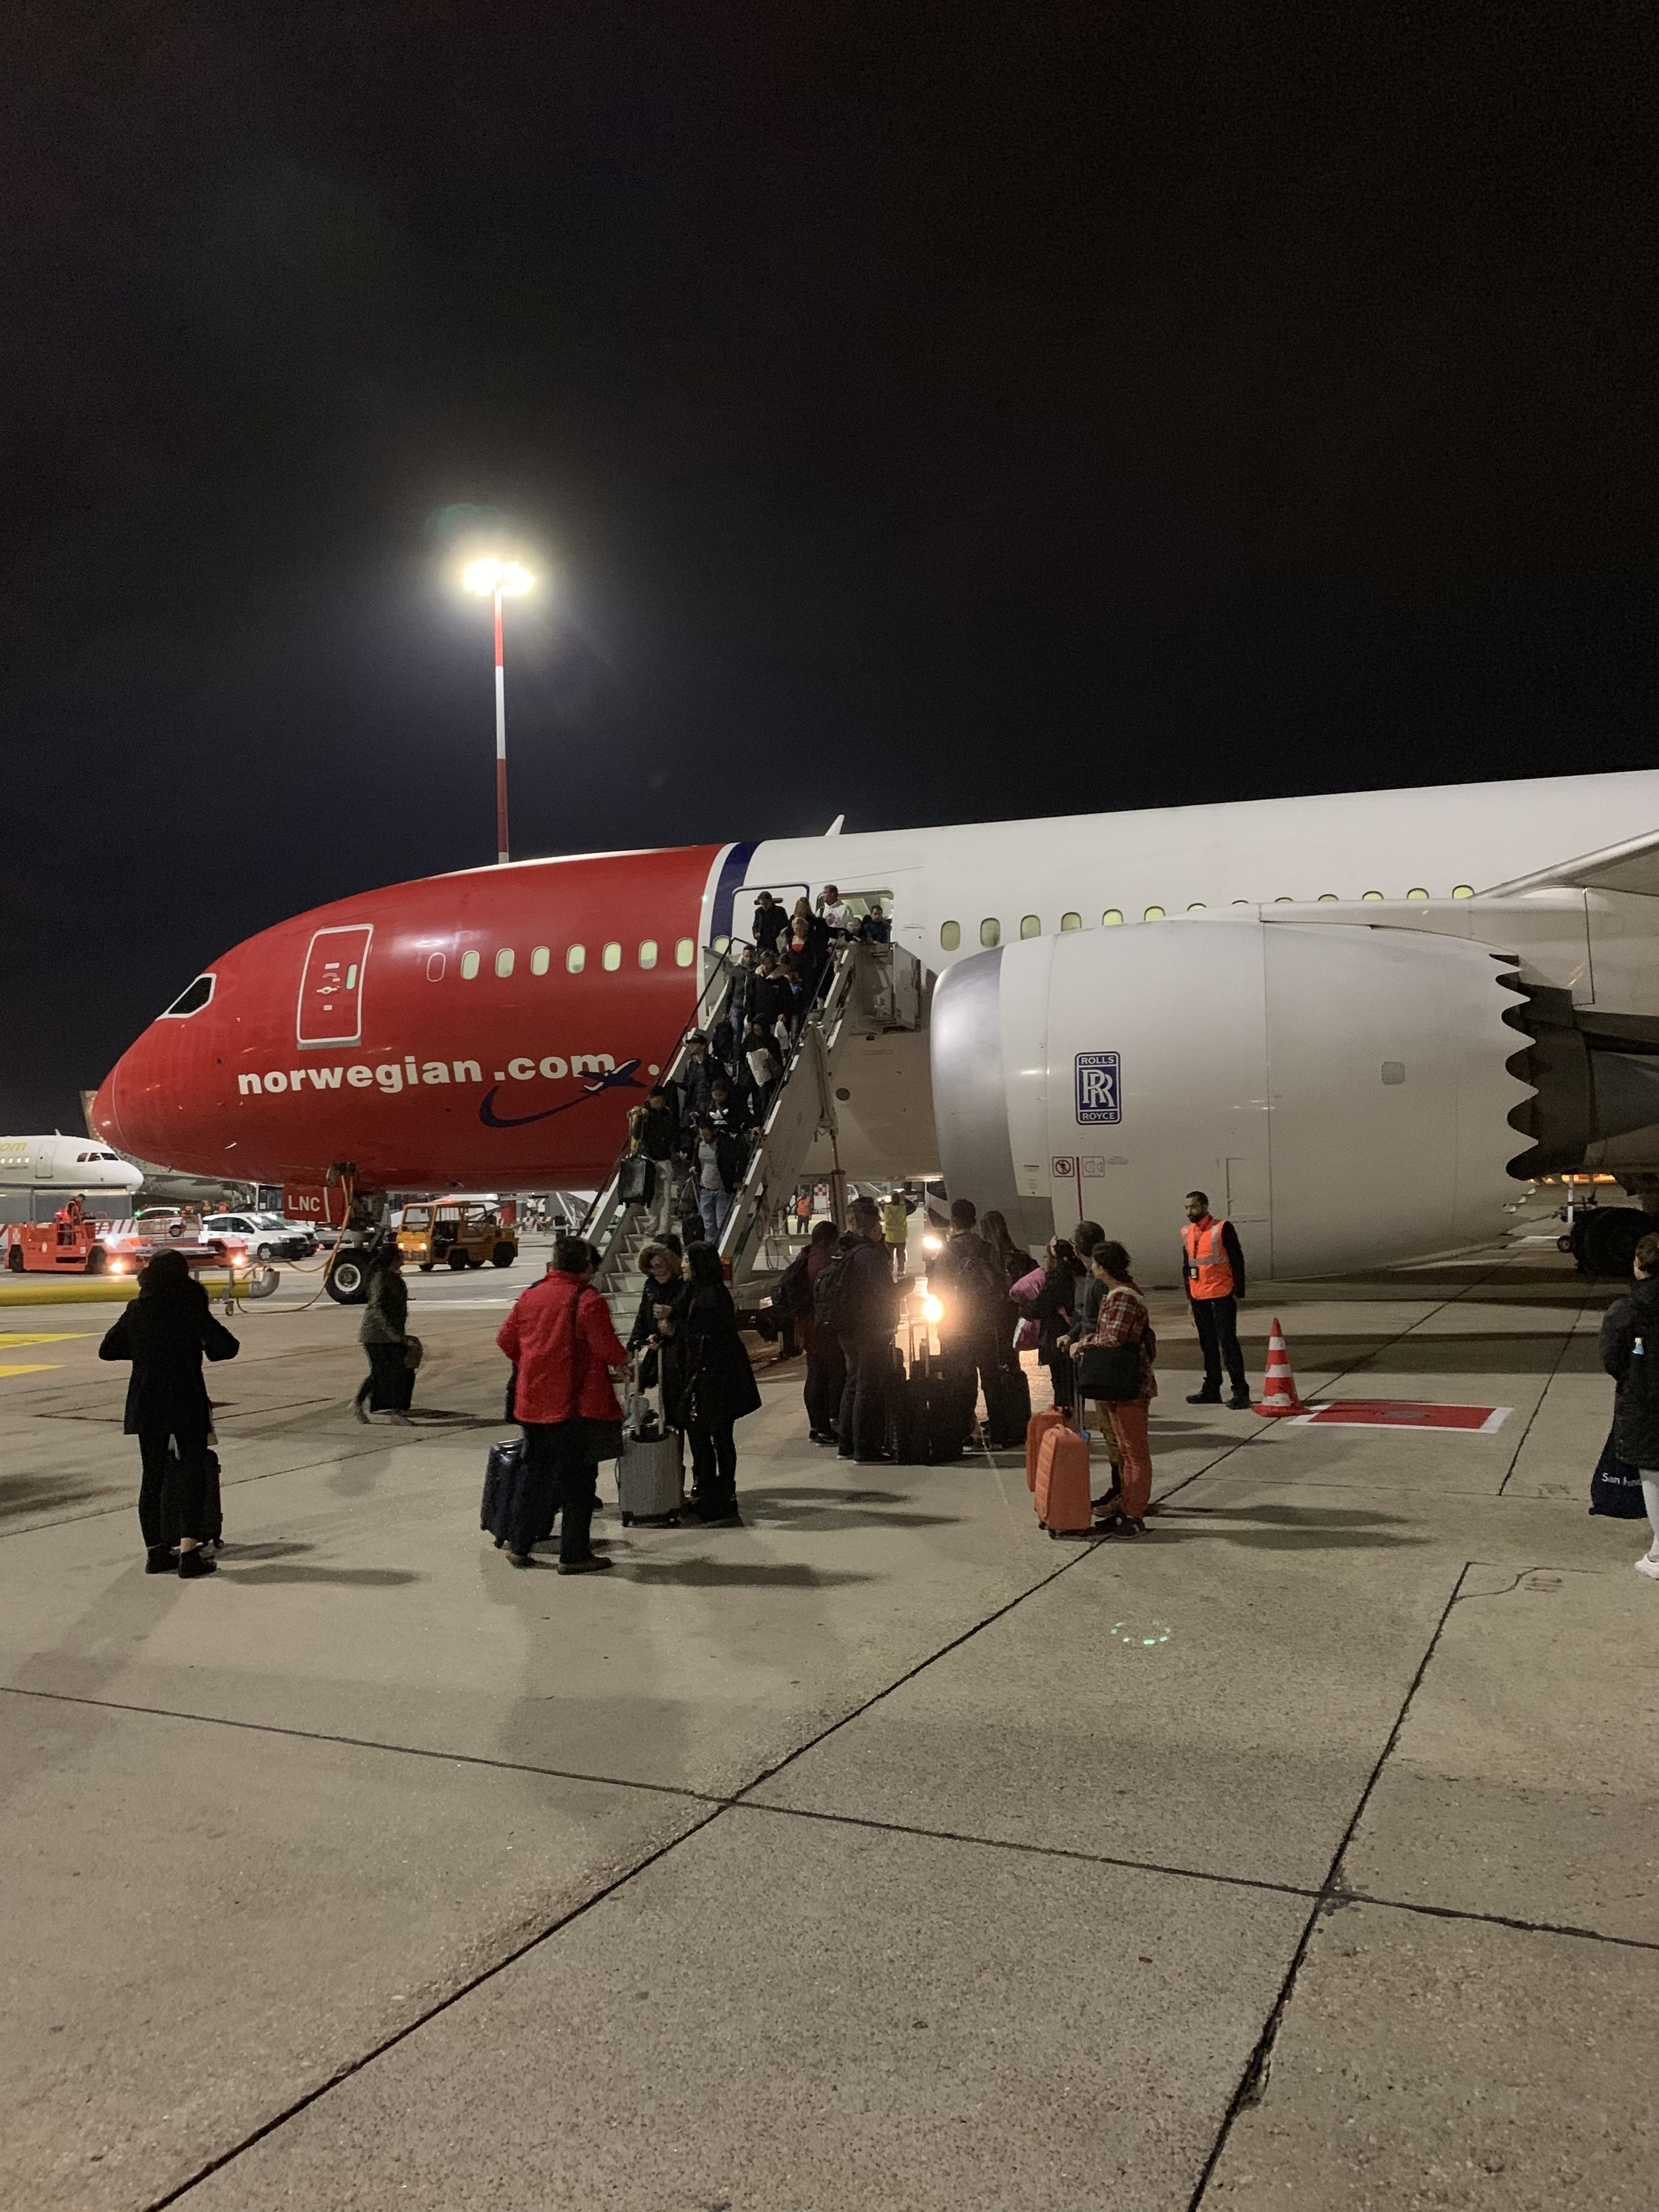 The Norwegian flight used bus gates on both ends, which meant passengers loaded and unloaded directly onto the tarmac and were ferried to the terminal on buses